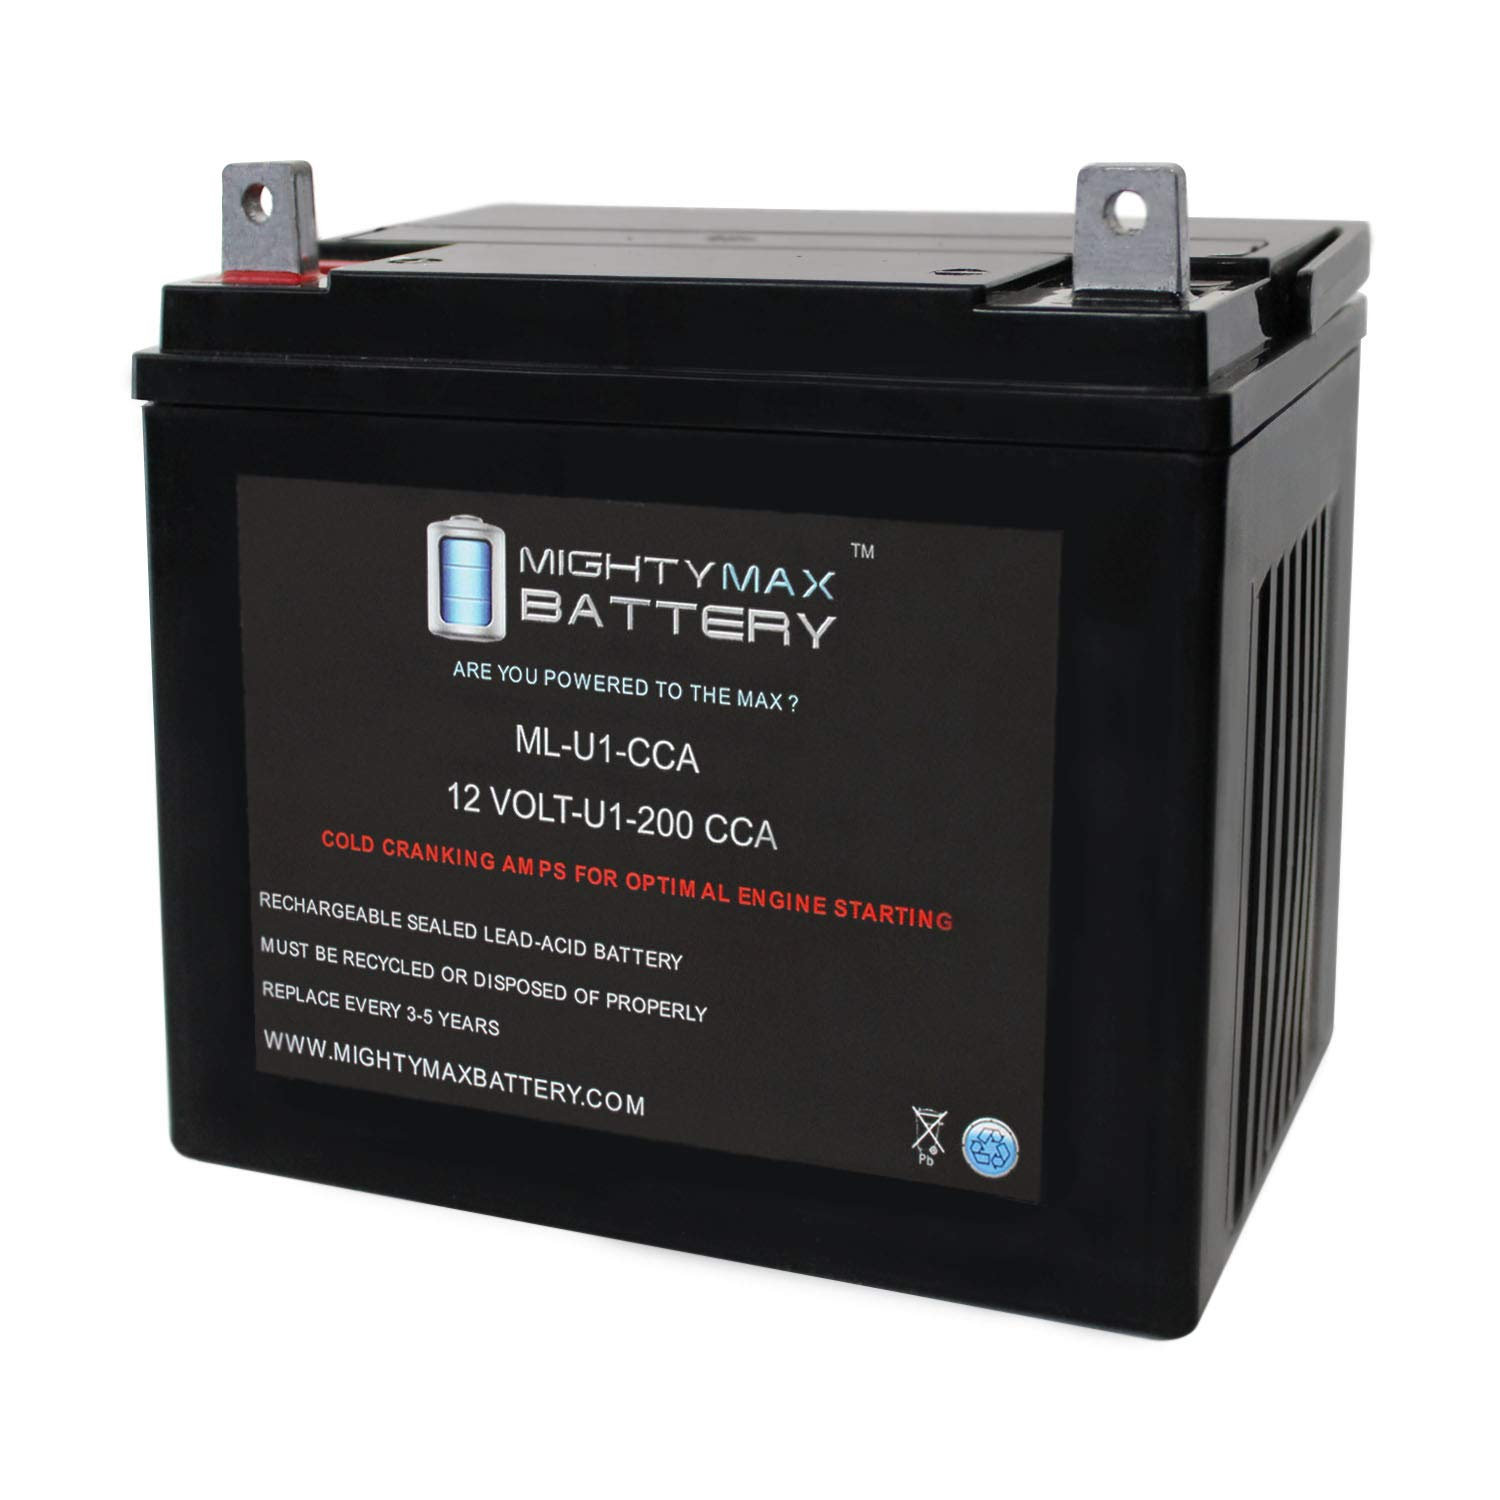 Mighty Max Battery ML-U1 200CCA Battery for John Deere L100 17 HP Lawn Tractor and Mower Brand Product